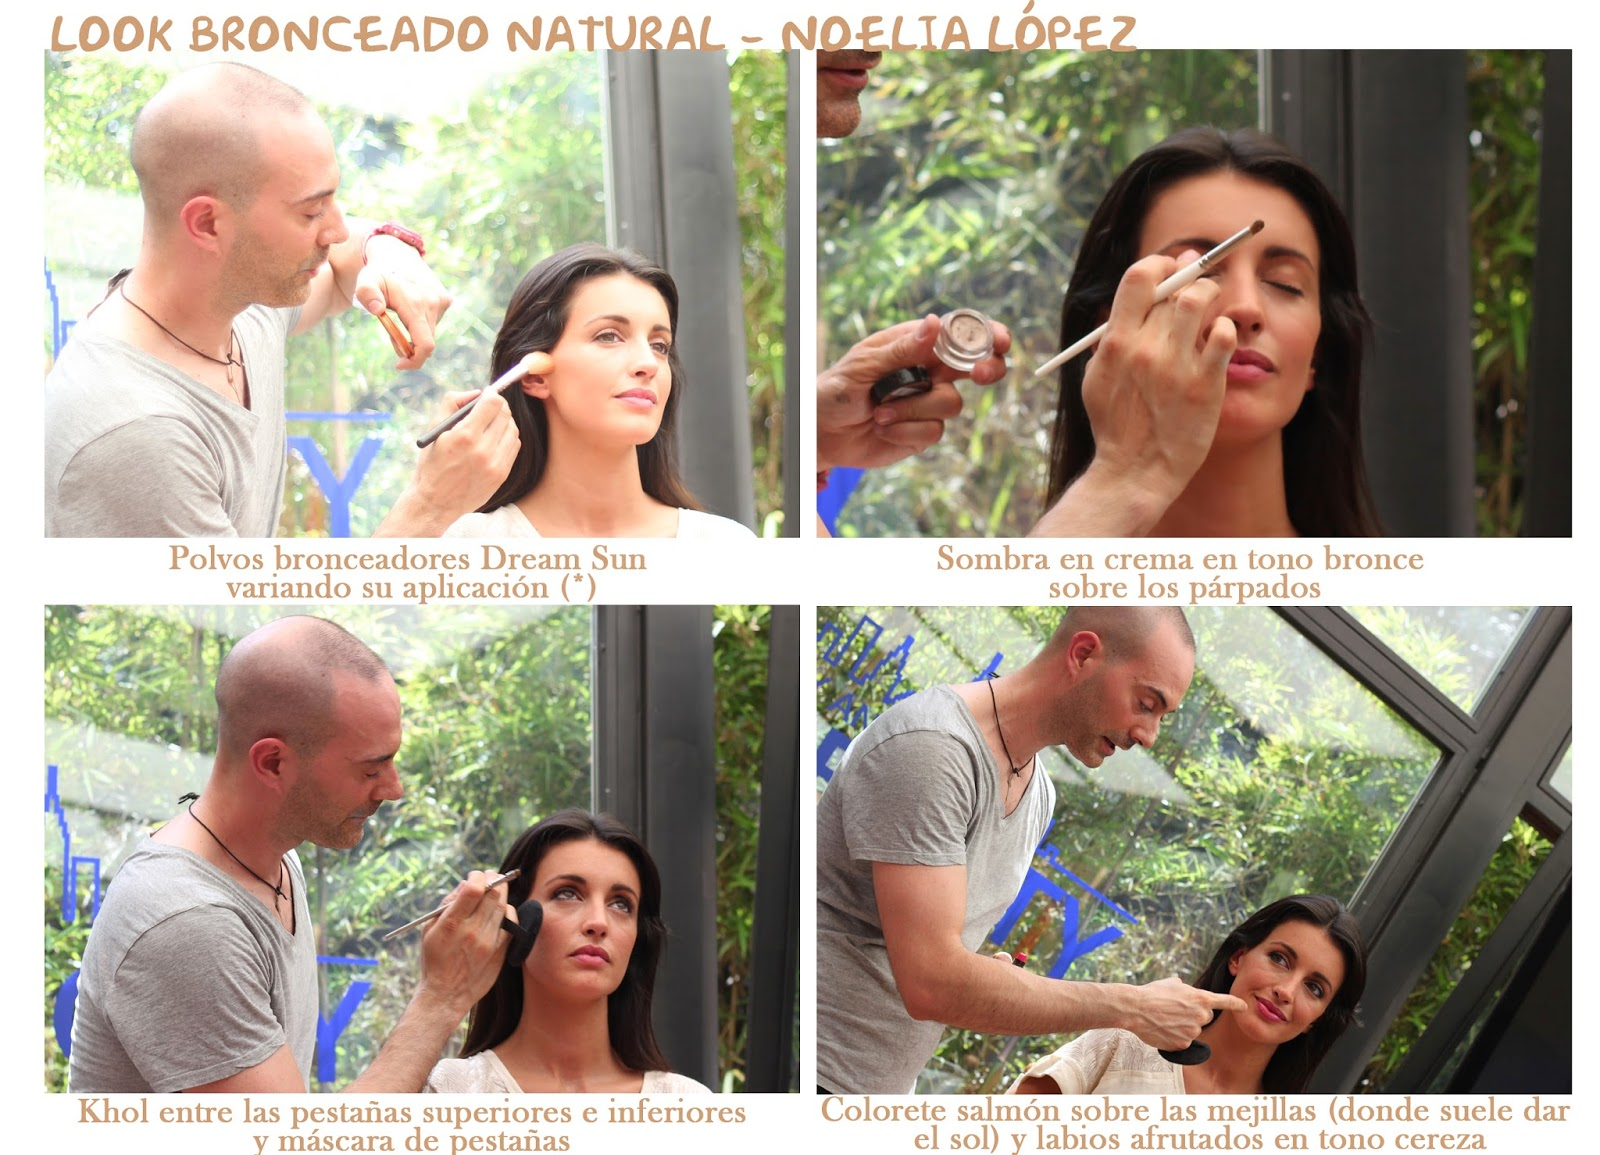 photo-maybelline_ny-gato-tutorial-maquillaje-look_bronceado_natural